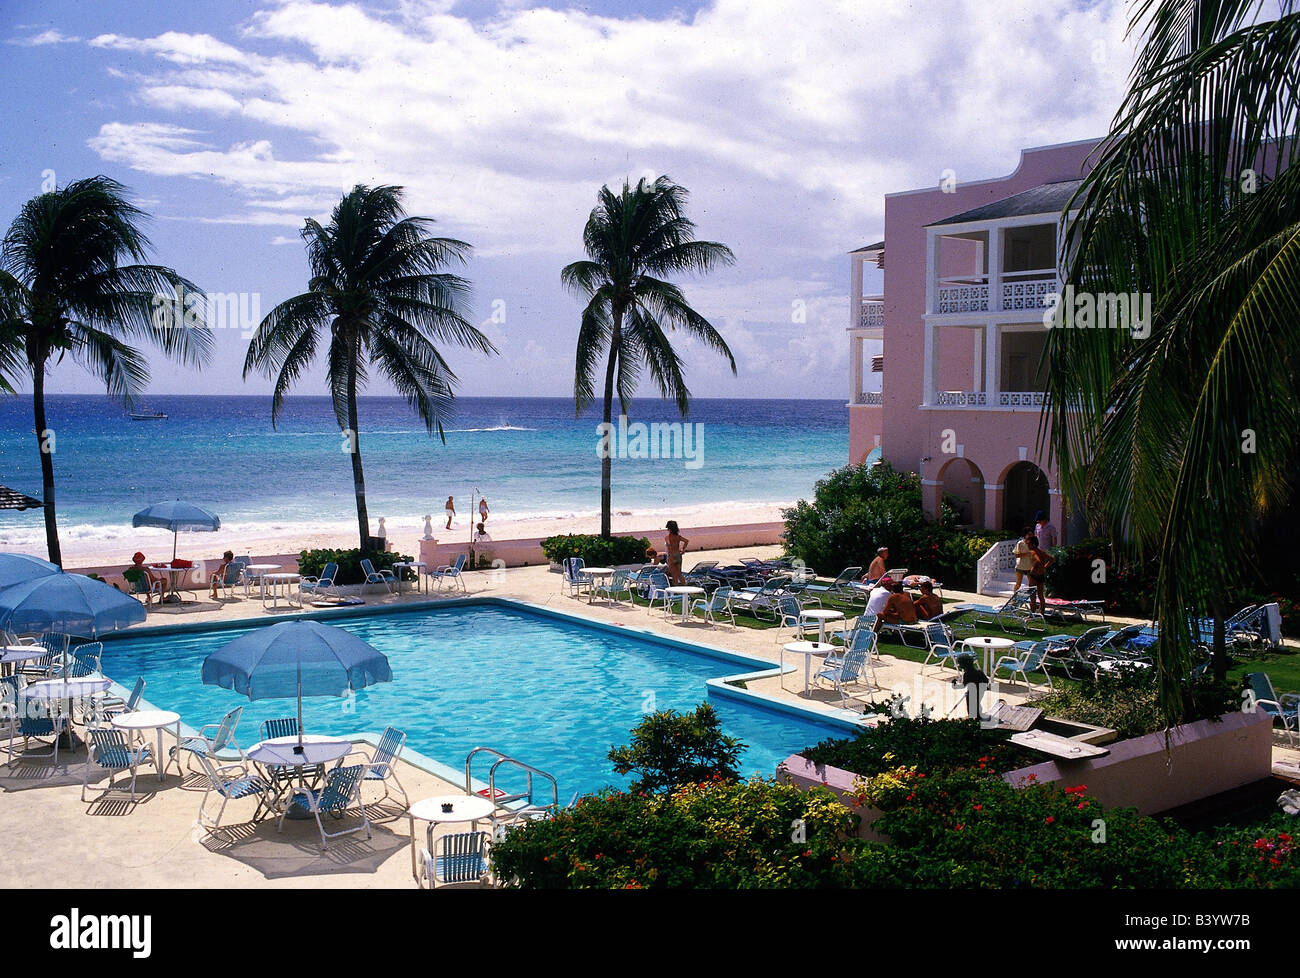 geography / travel, Barbados, gastronomy, Hotel, South Palm Beach club, Hotel area, Lesser Antilles, holiday, holidays, - Stock Image